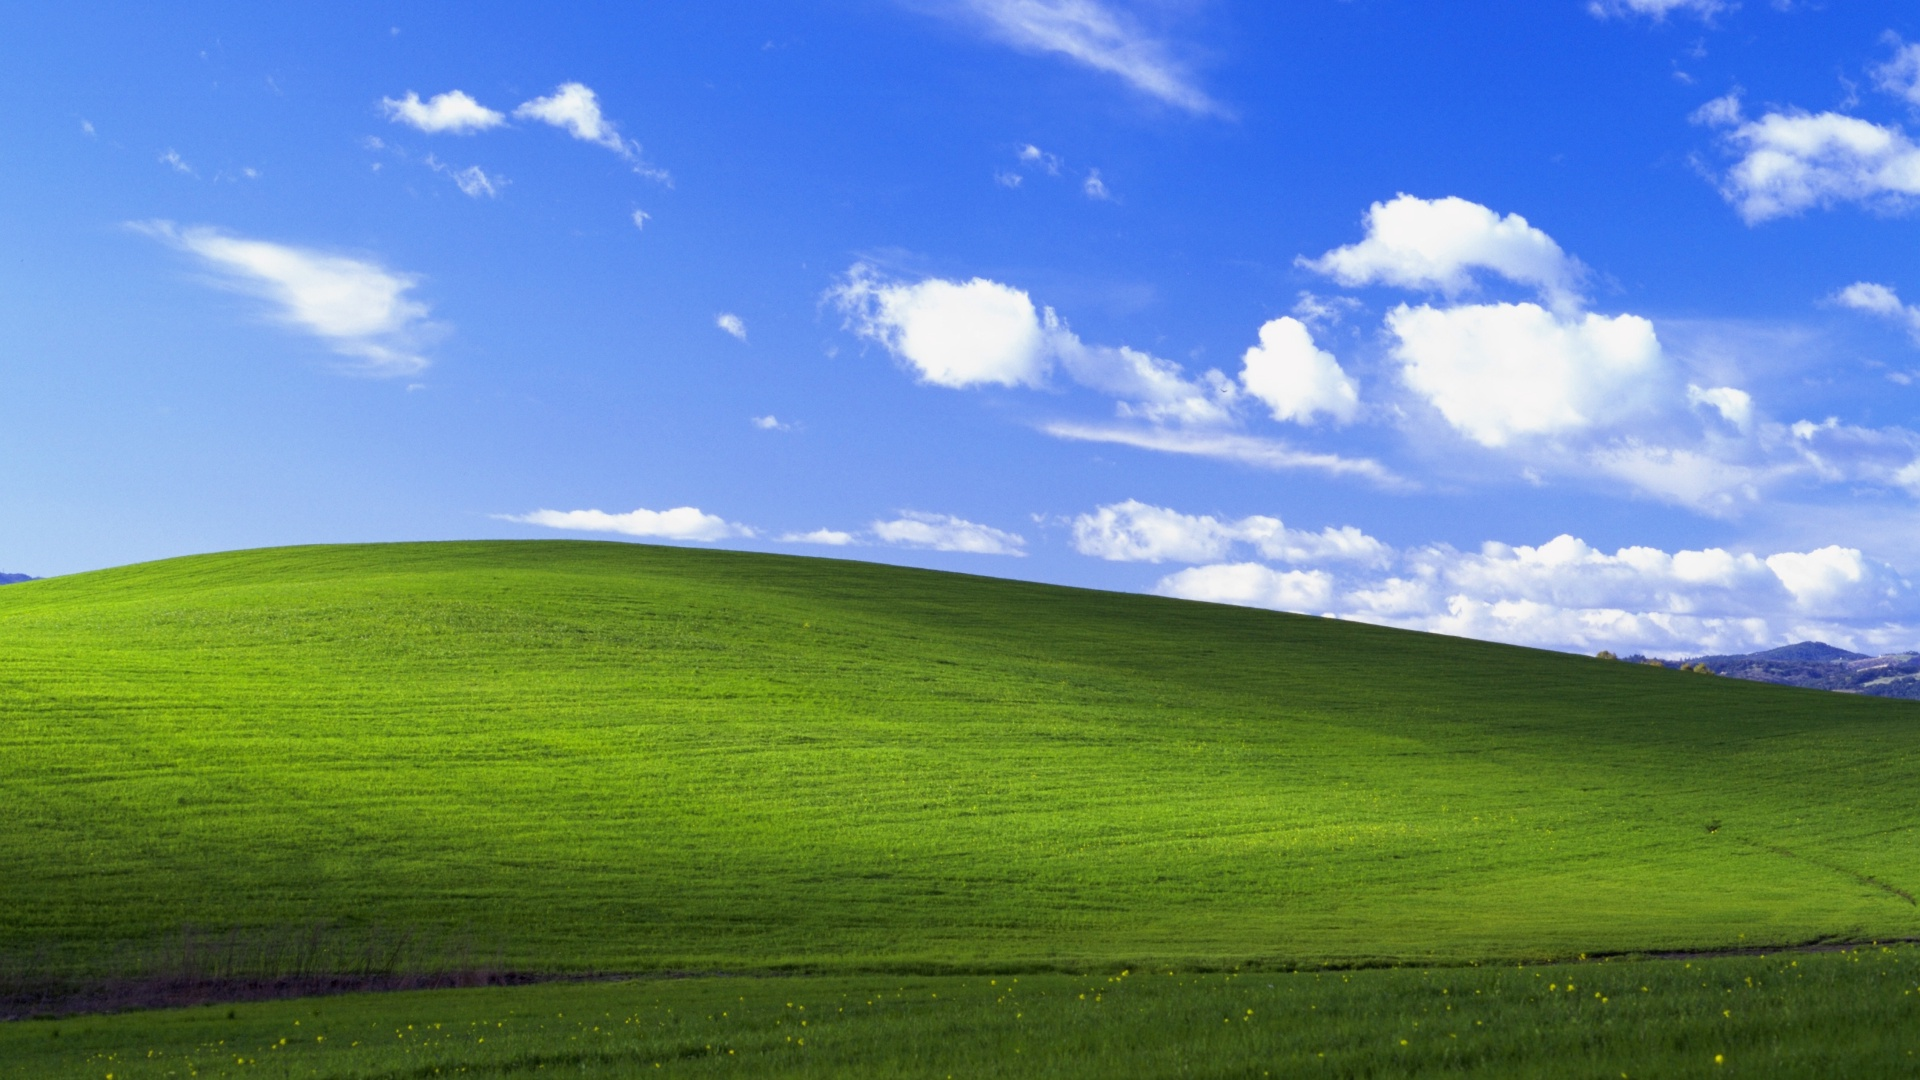 1920x1080 Windows XP wallpaper 1920x1080